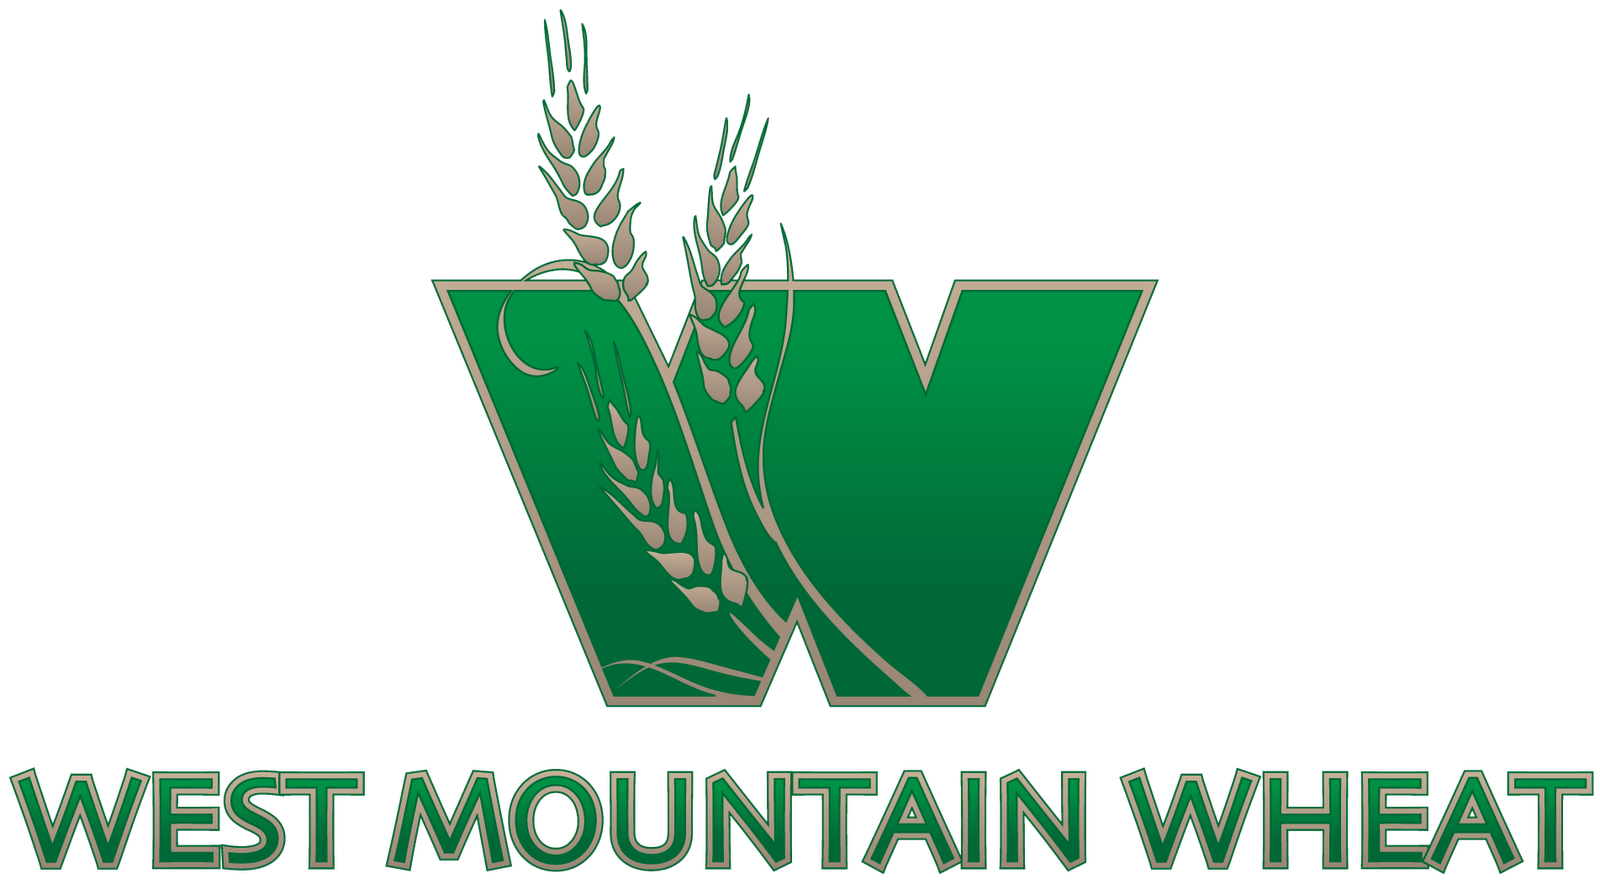 West Mountain Wheat Company, LLC